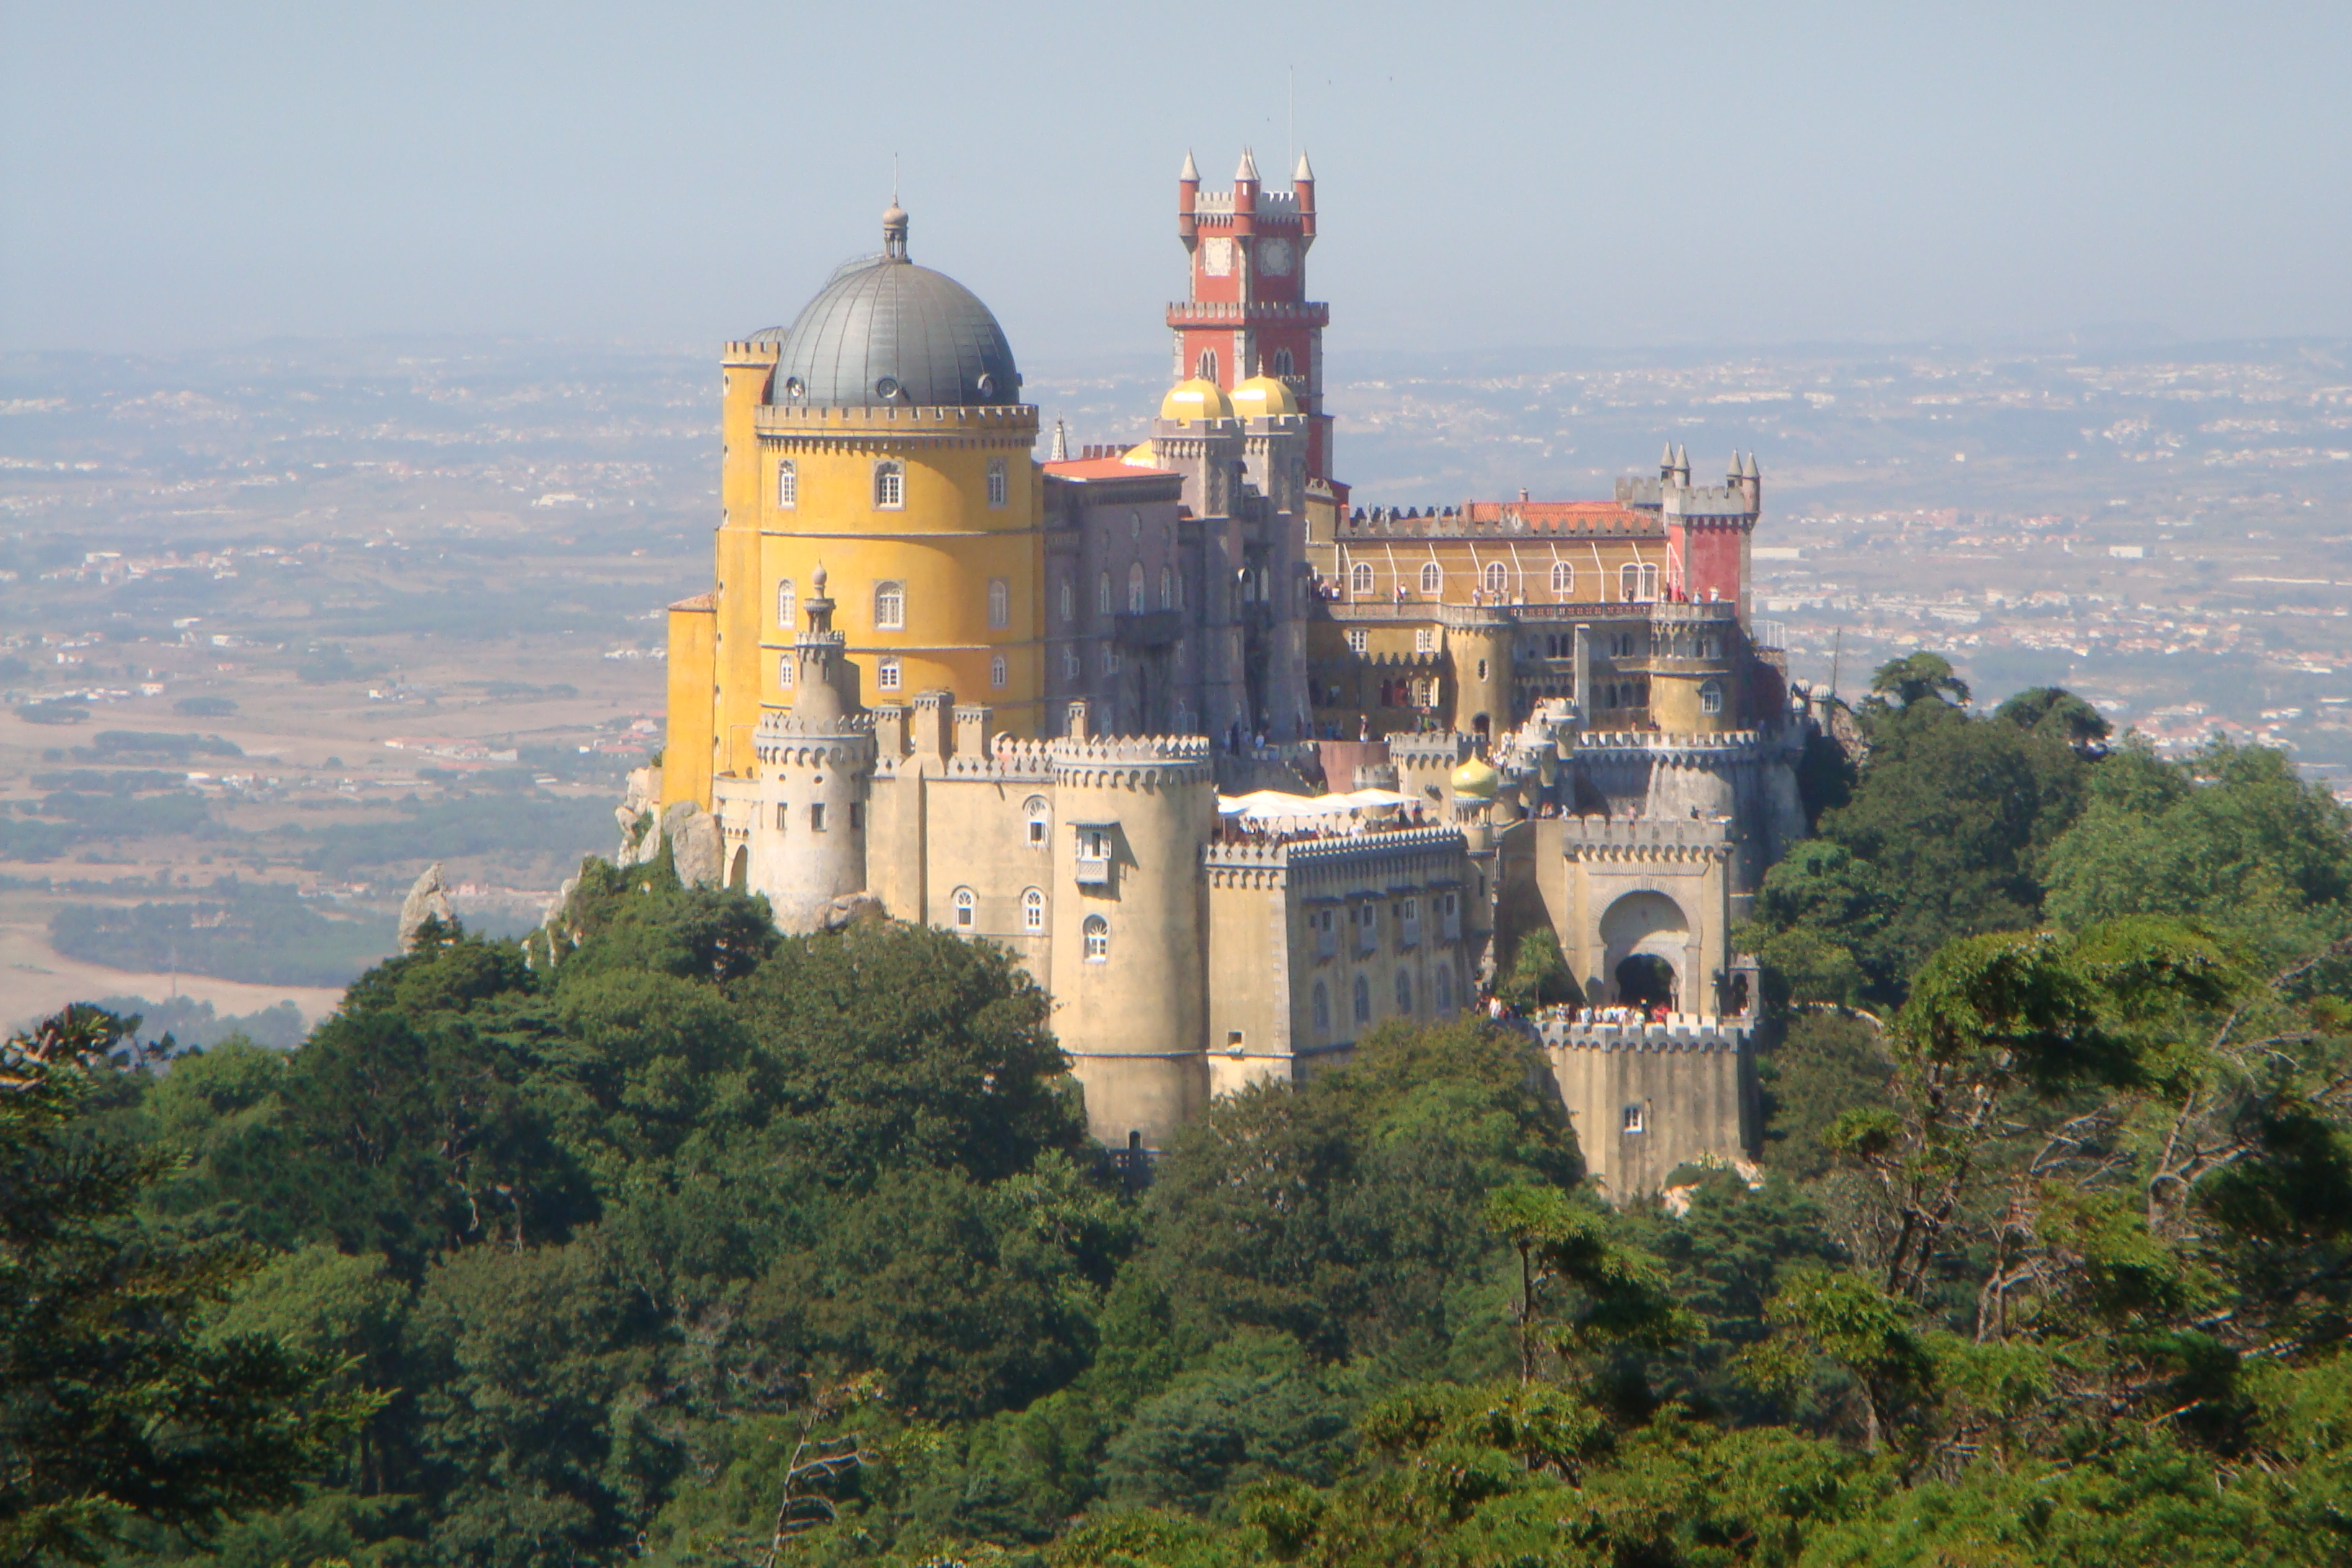 National Palace of Pena surrounded by lush trees